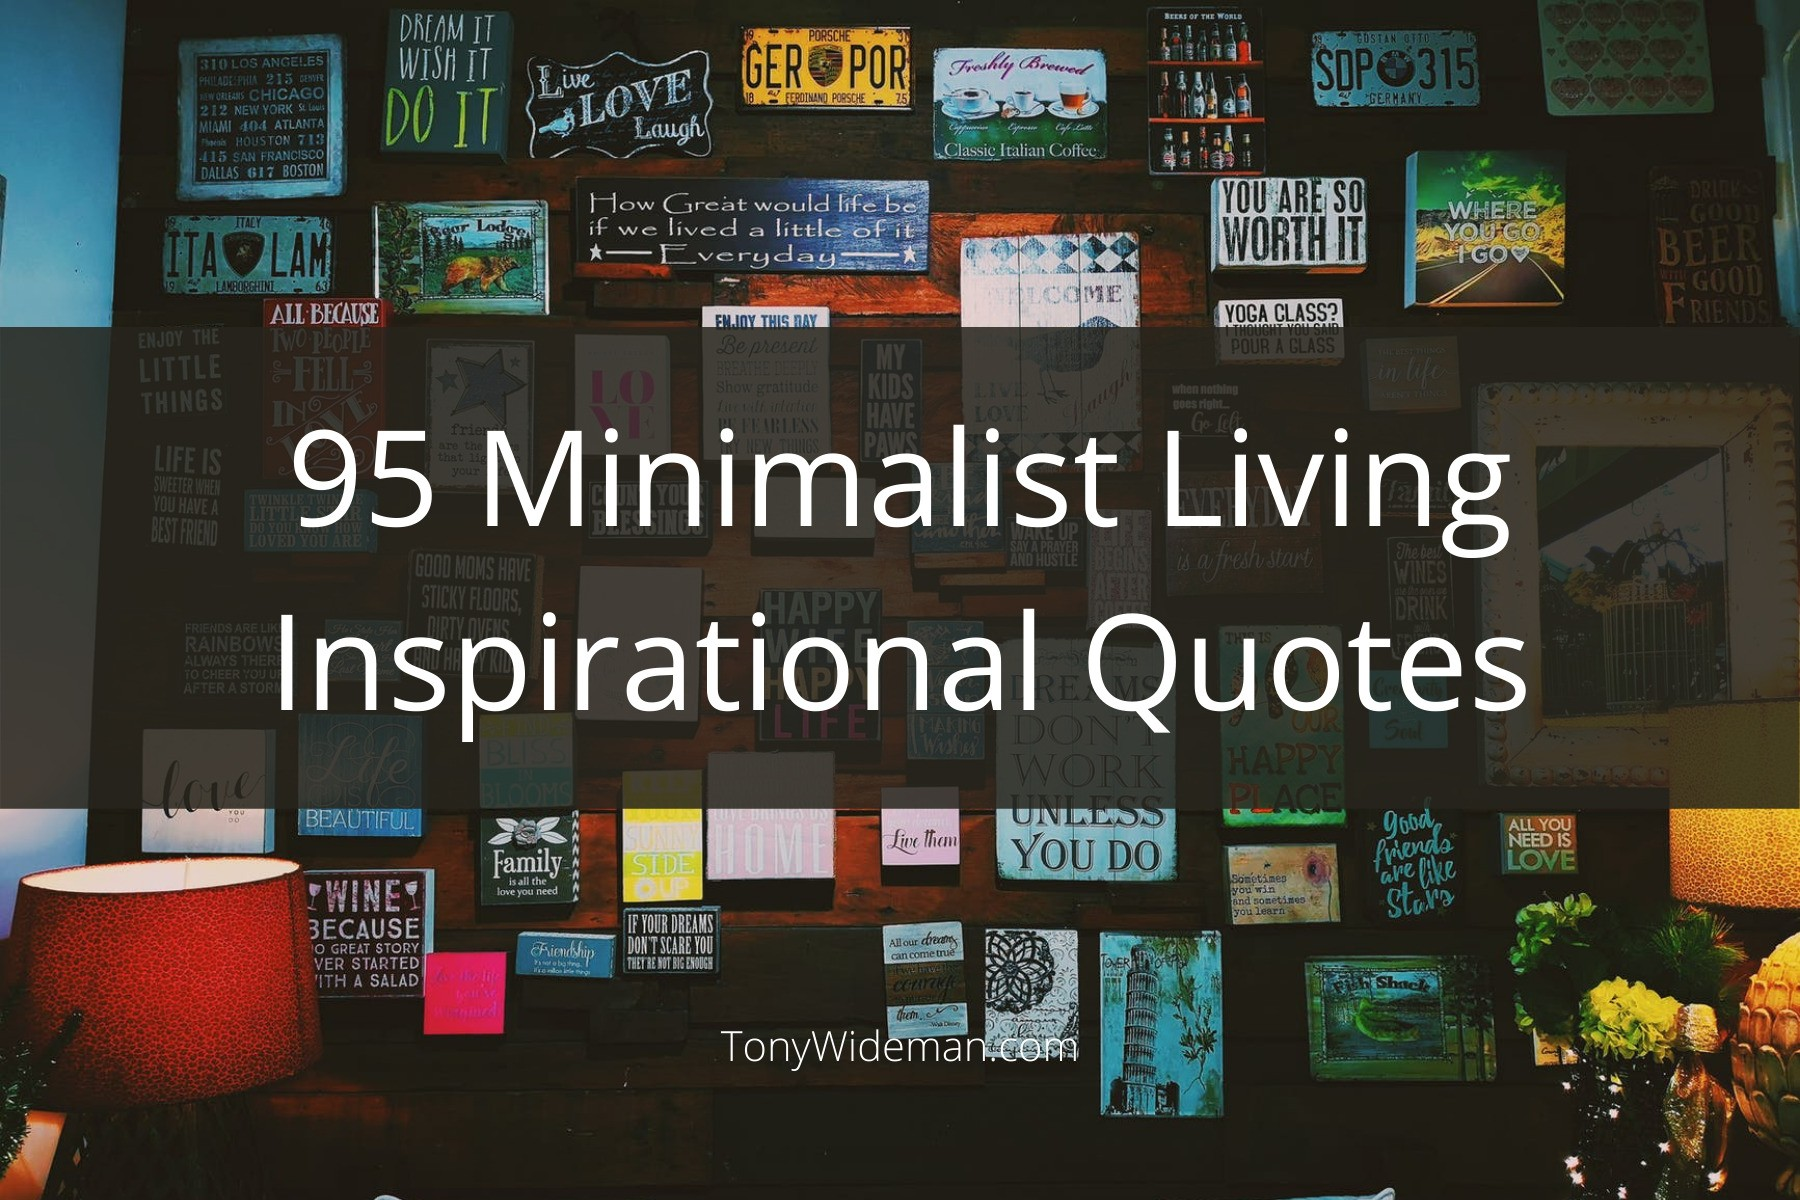 95 Minimalist Living Inspirational Quotes Guaranteed To Enhance Your Life